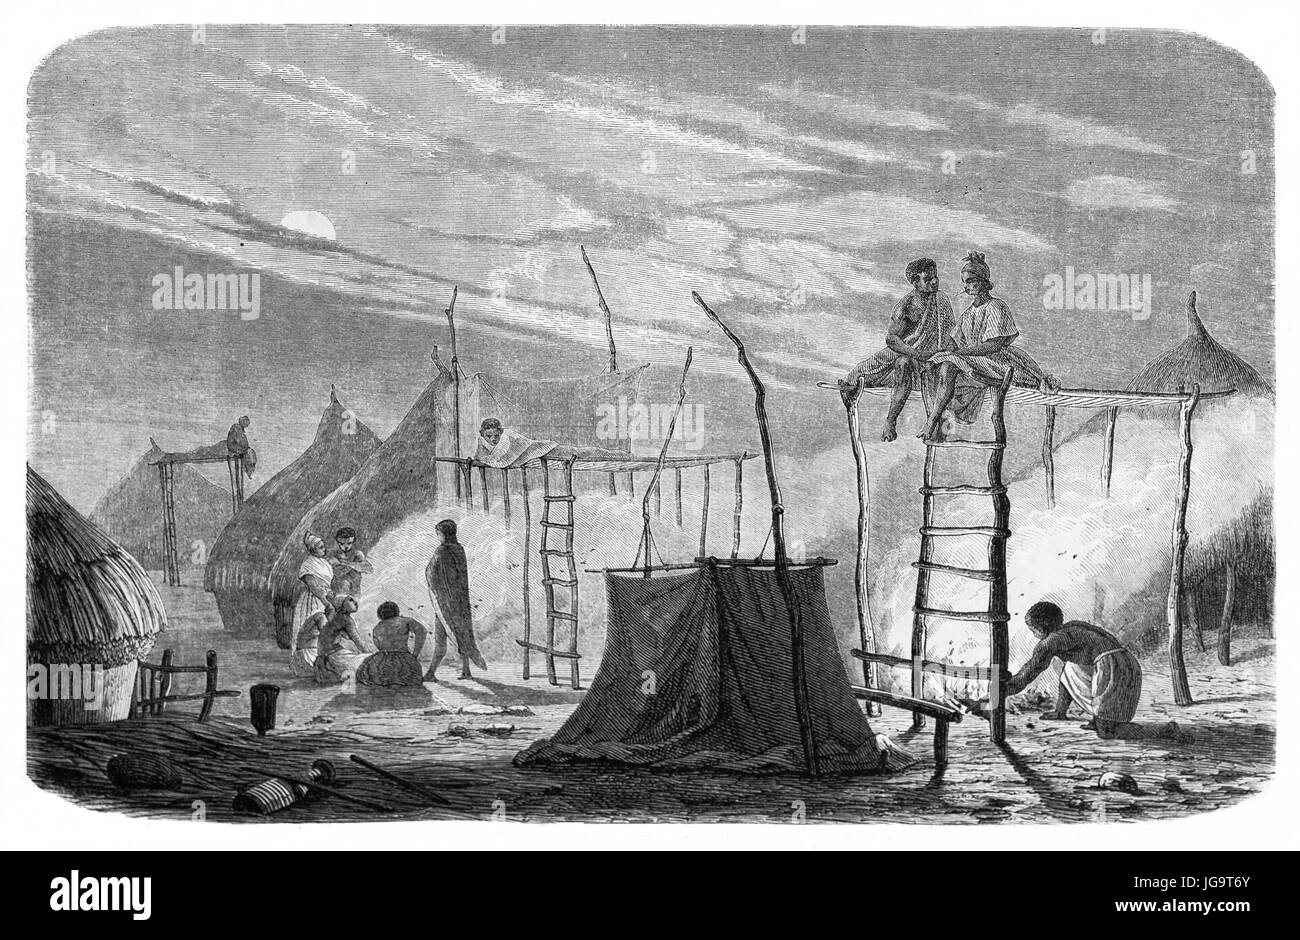 Old illustration of a village in southern Senegal (native lighting bonfires to drive away mosquitoes). Created by - Stock Image